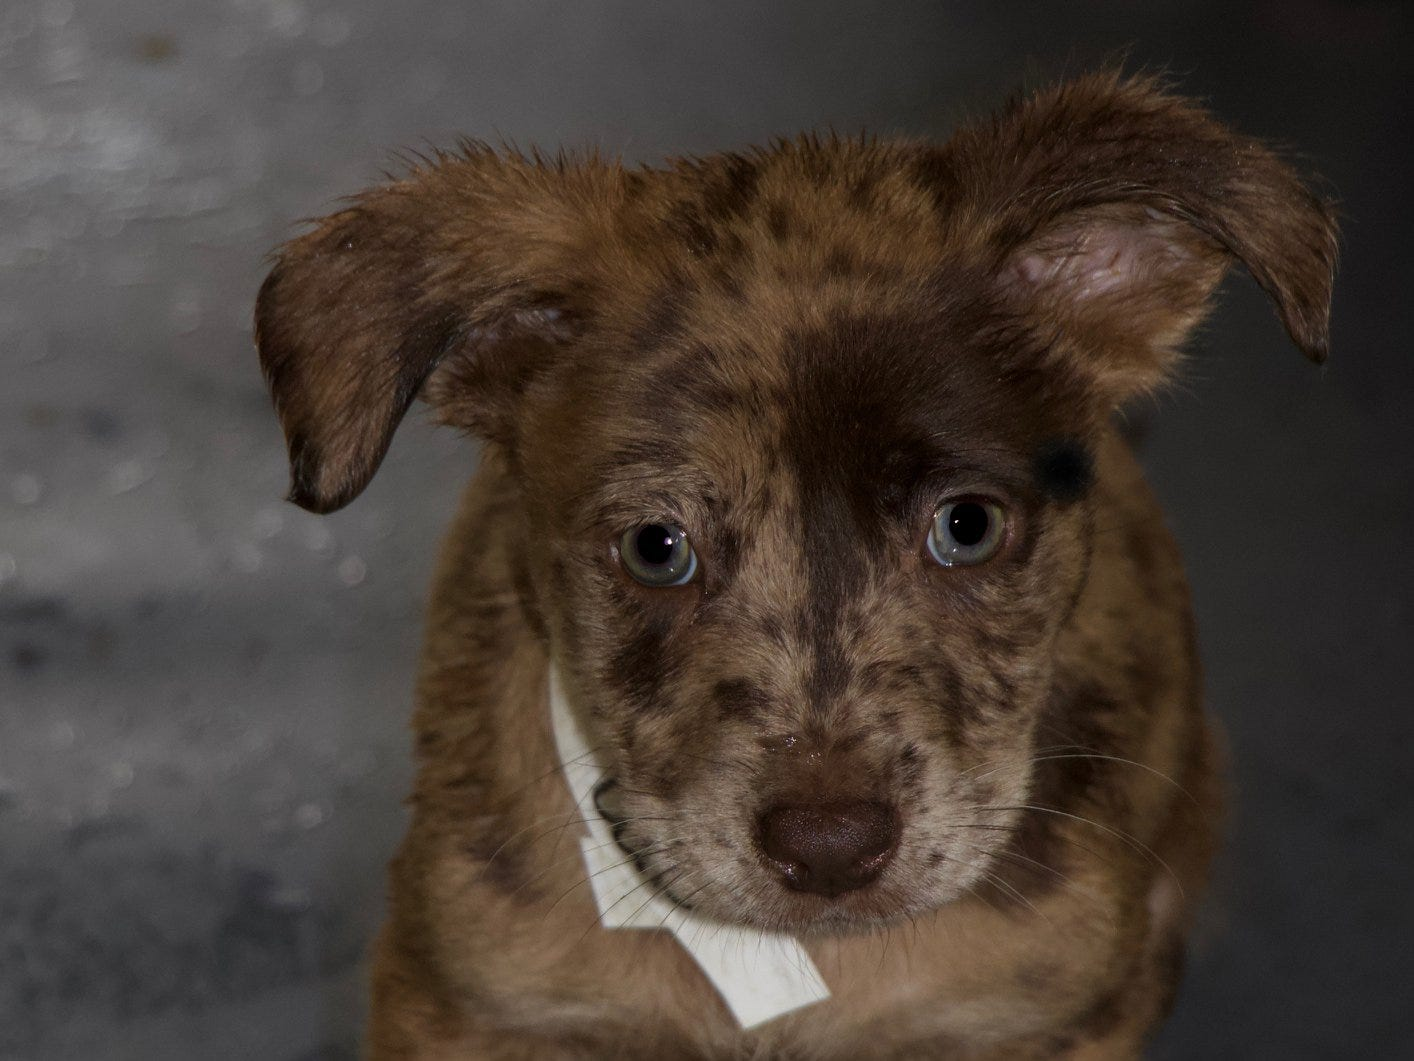 This puppy will be available at the Brandywine Valley SPCA's 2018 Mega Adoption Event at the Delaware State Fairgrounds in Harrington this weekend.